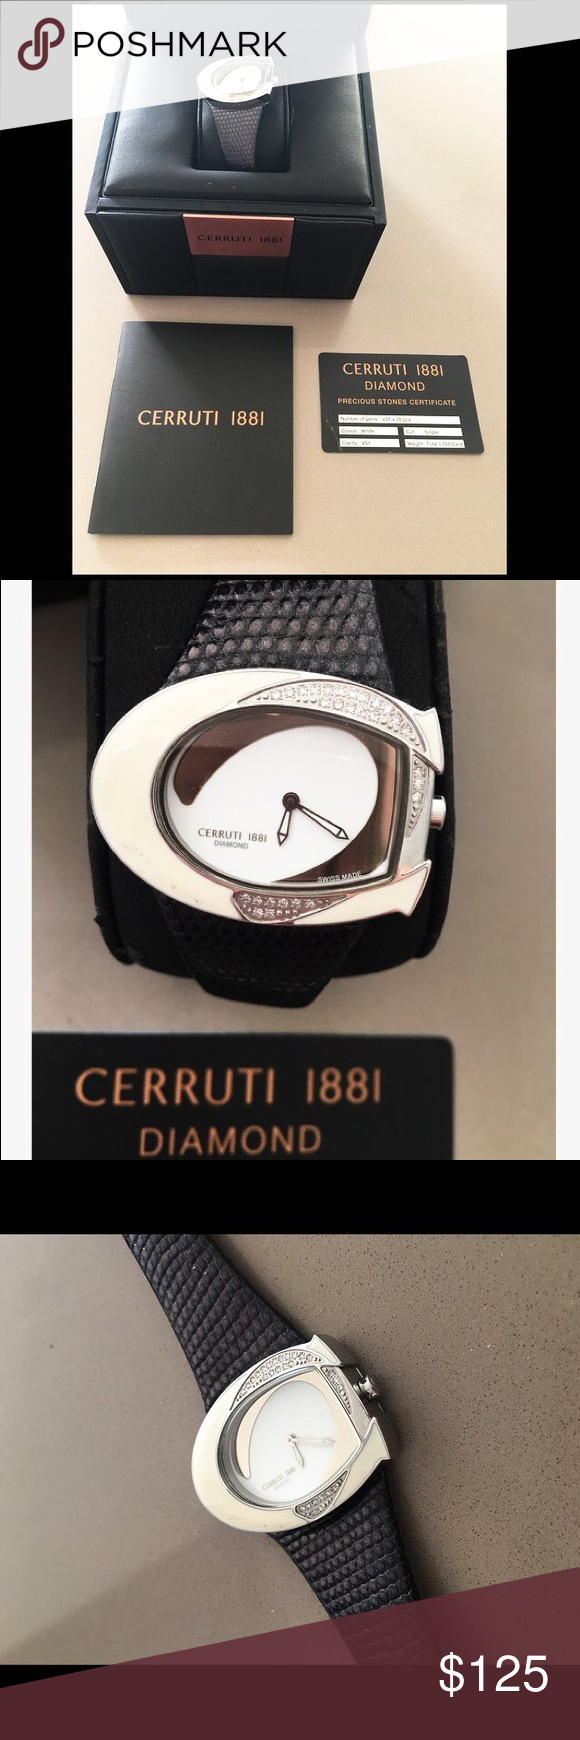 997bec91b6 Cerruti 1881 Diamond Watch Number of gems: VS1x28pcs - Cut: Single -  Clarity: VS1 - Weight: Total 0.168 Carat - Real black leather - Comes with  original box ...